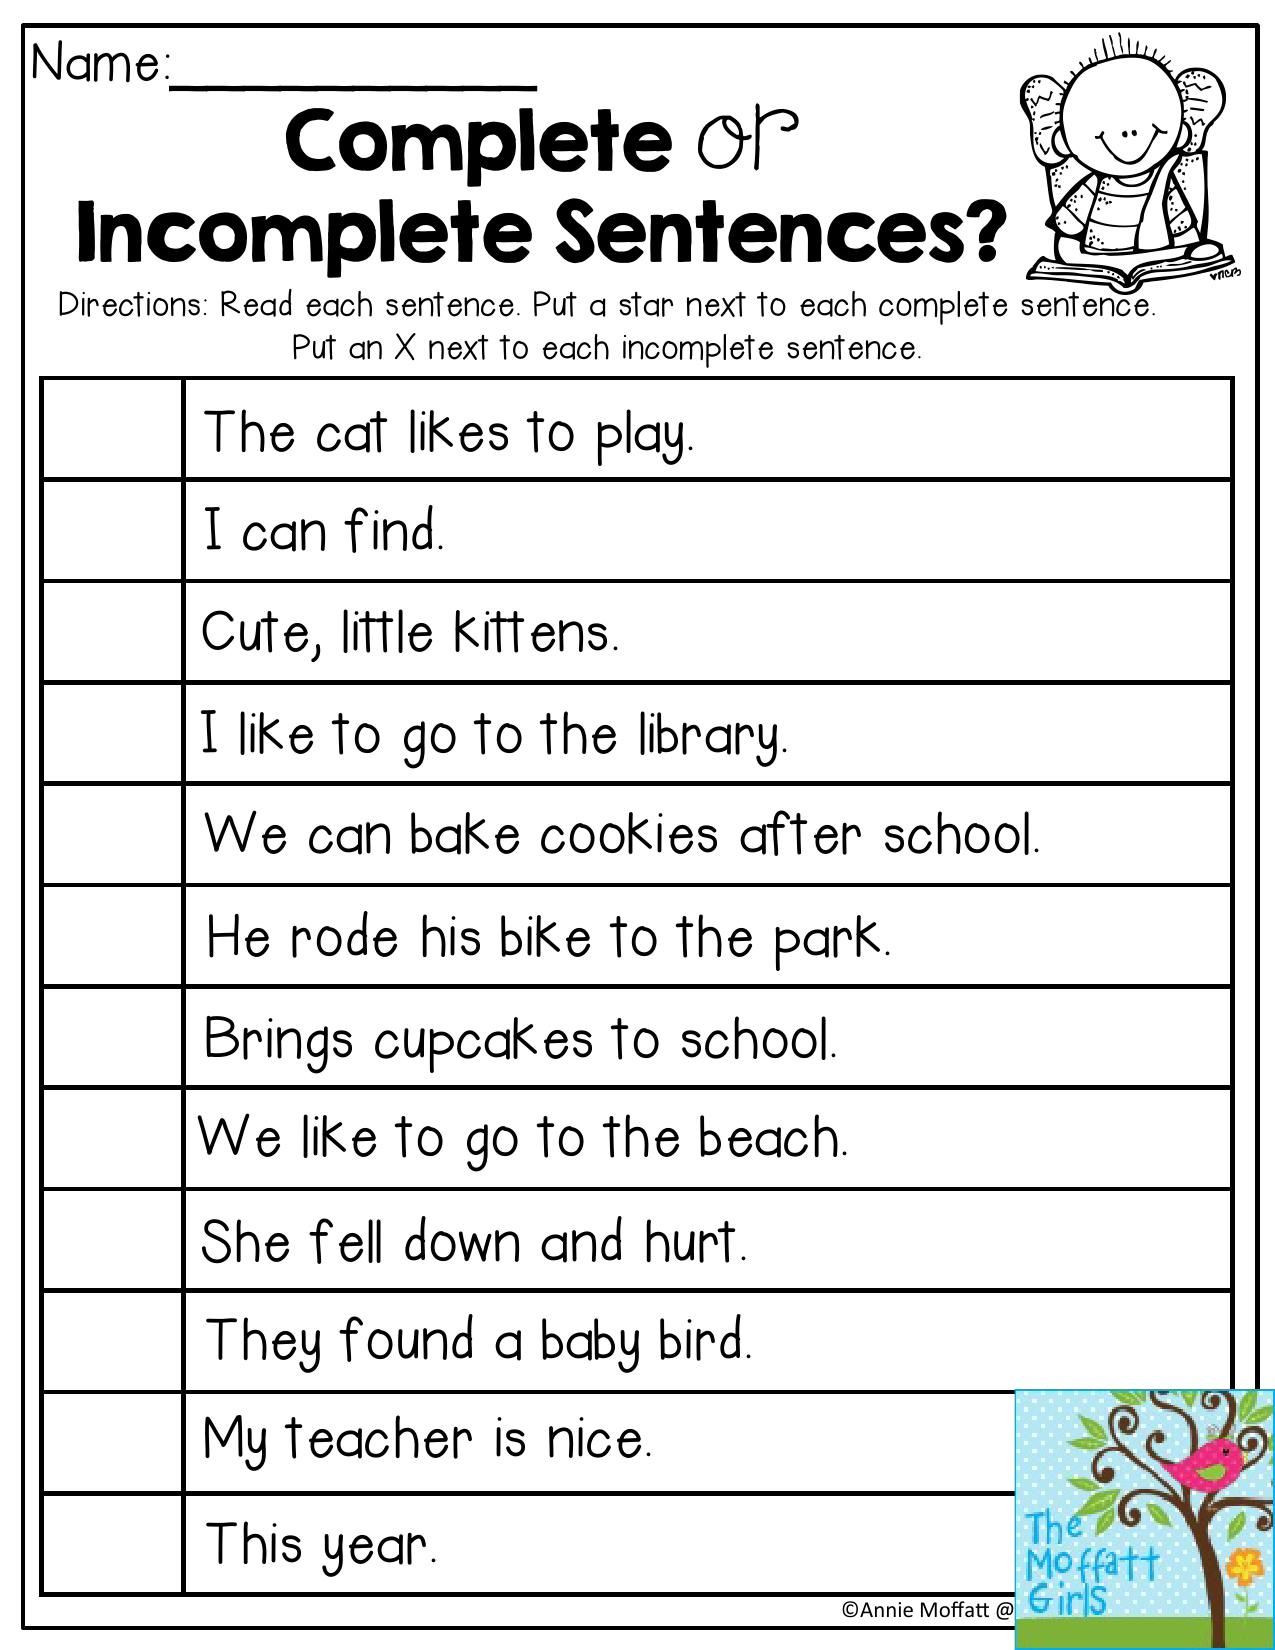 Complete Sentence Worksheets 4th Grade Plete or In Plete Sentences Read Each Sentence and